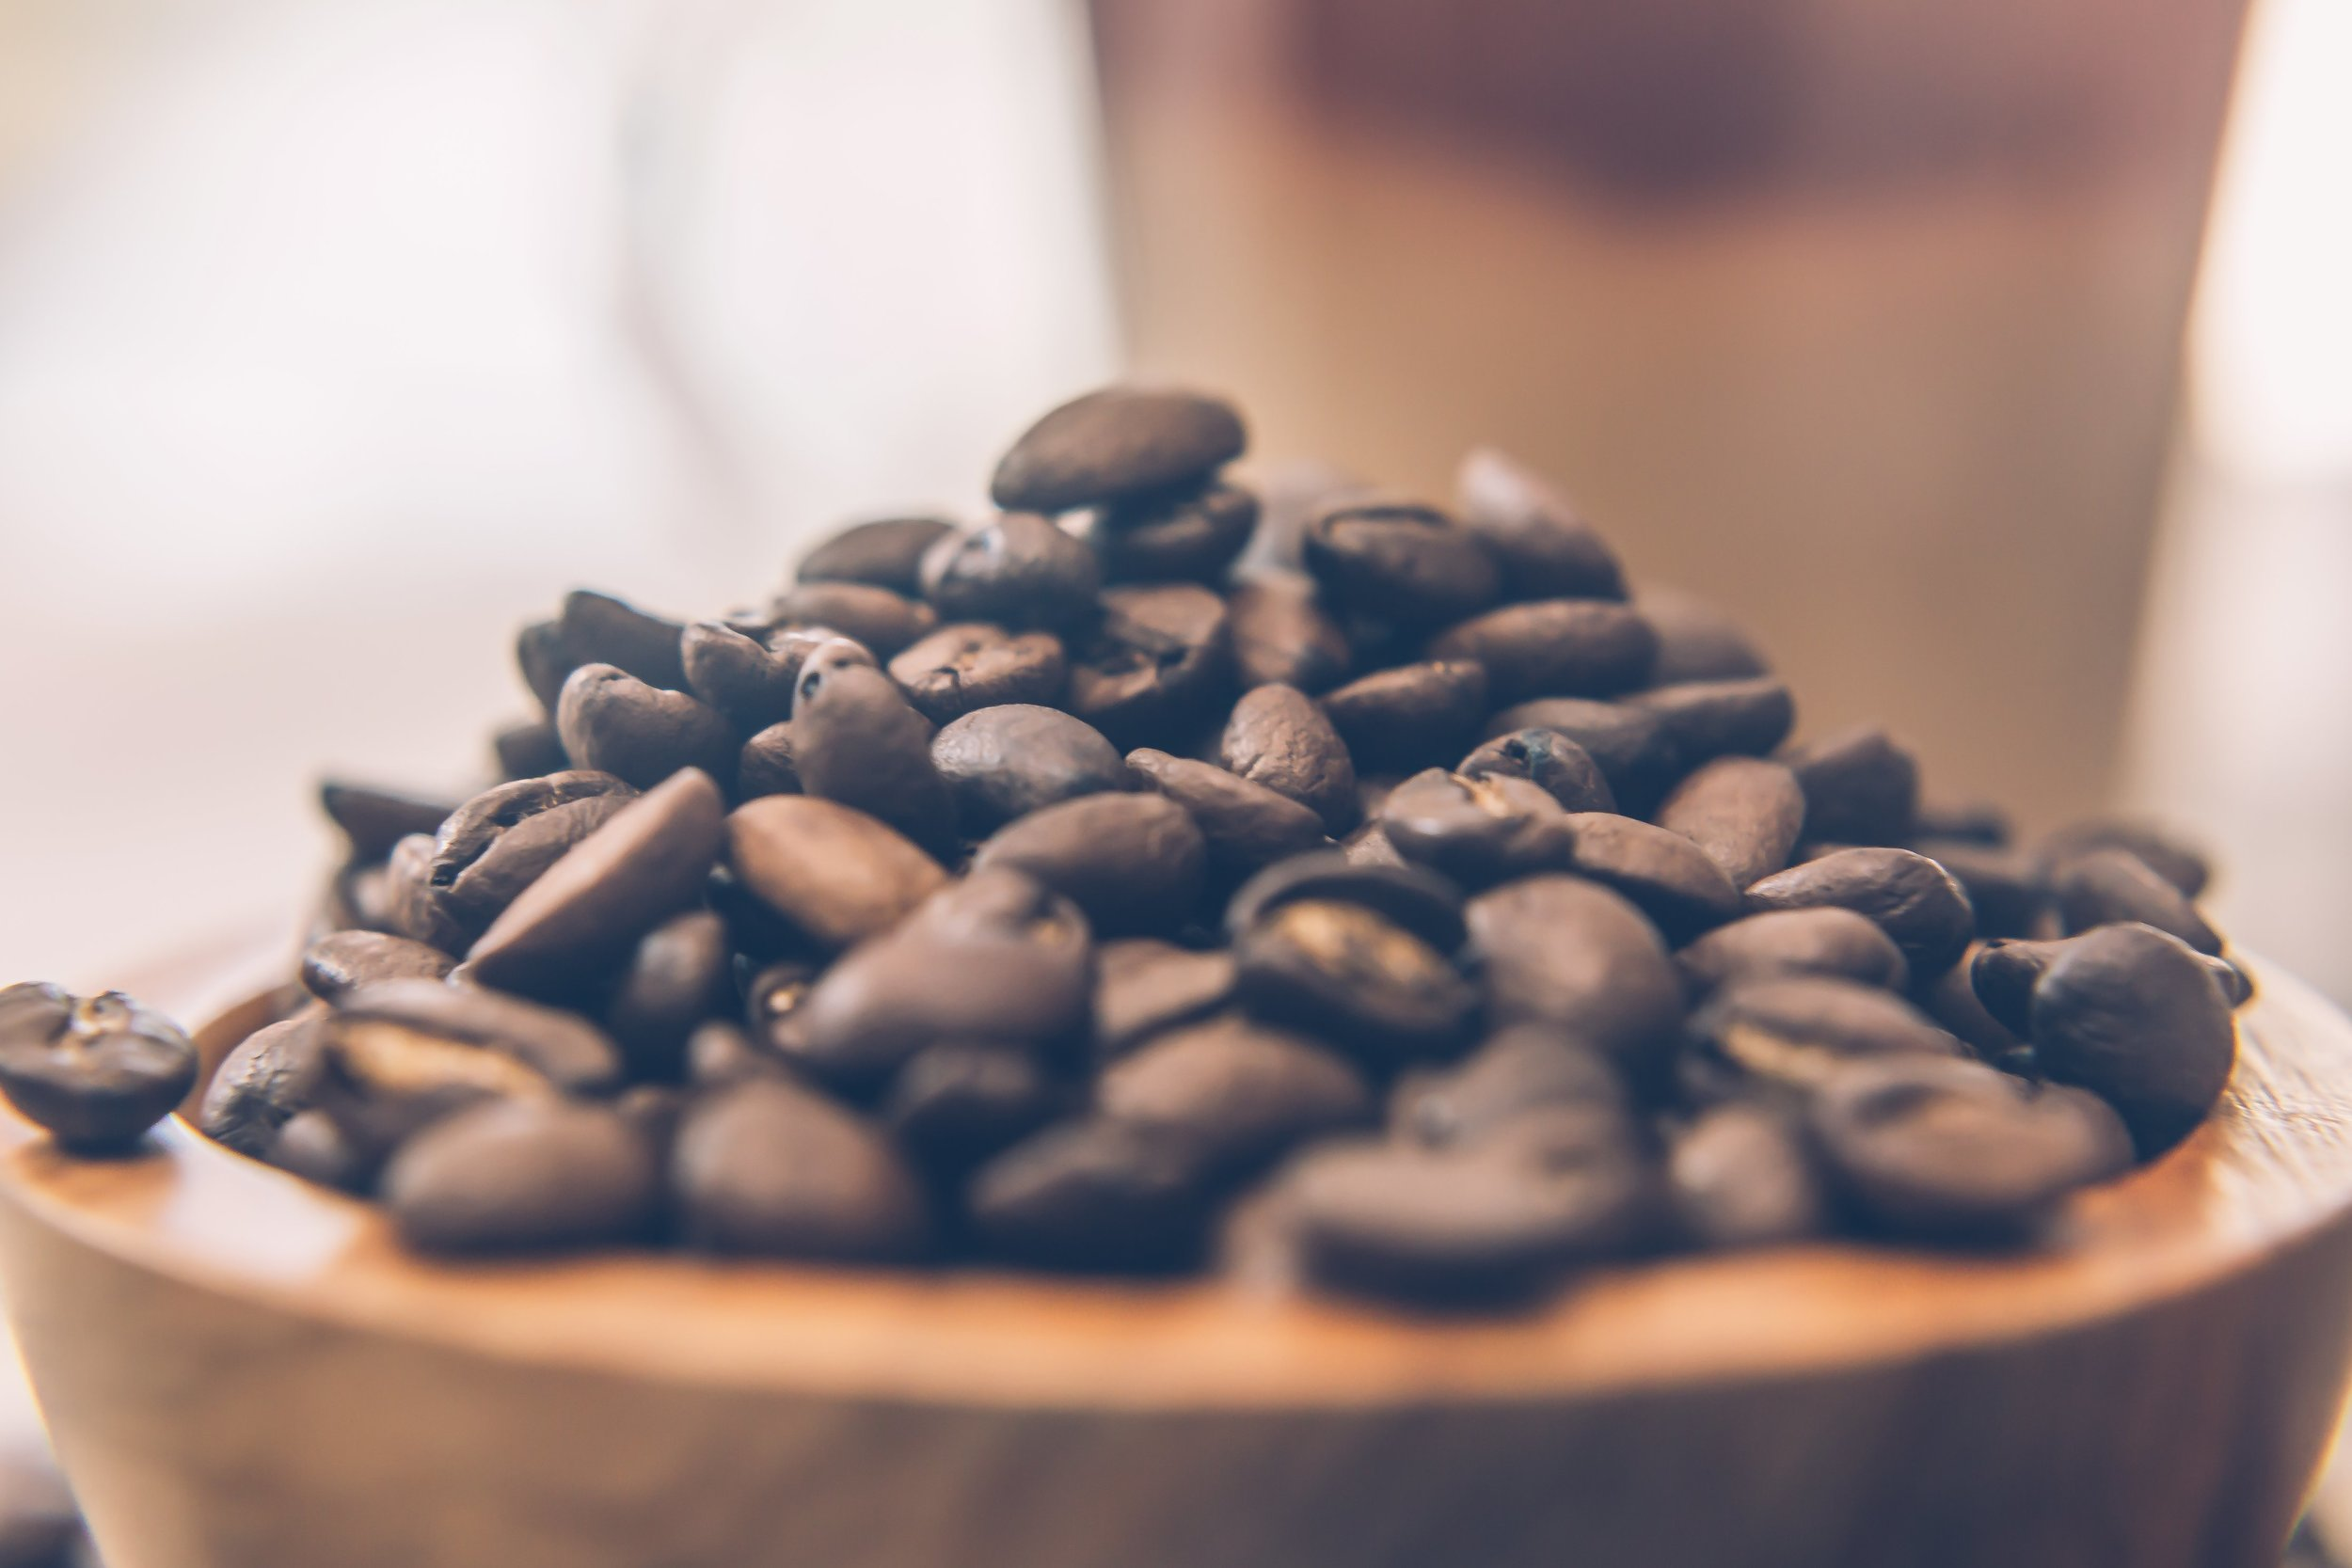 Closeup_of_Coffee_Beans.jpg